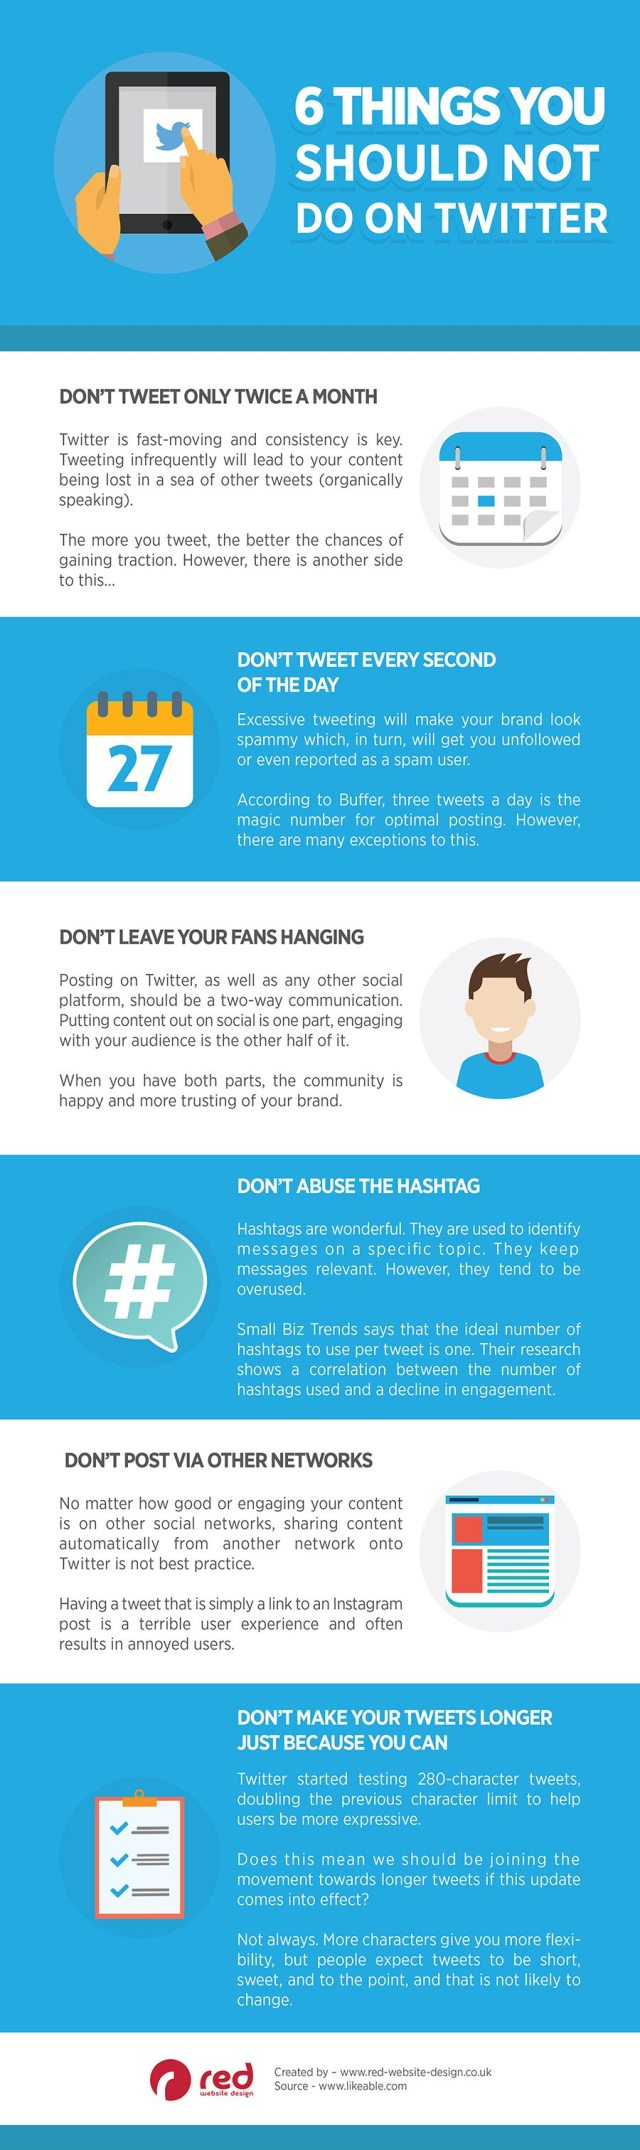 6_things_you_shouldnt_do_on_Twitter_infographic